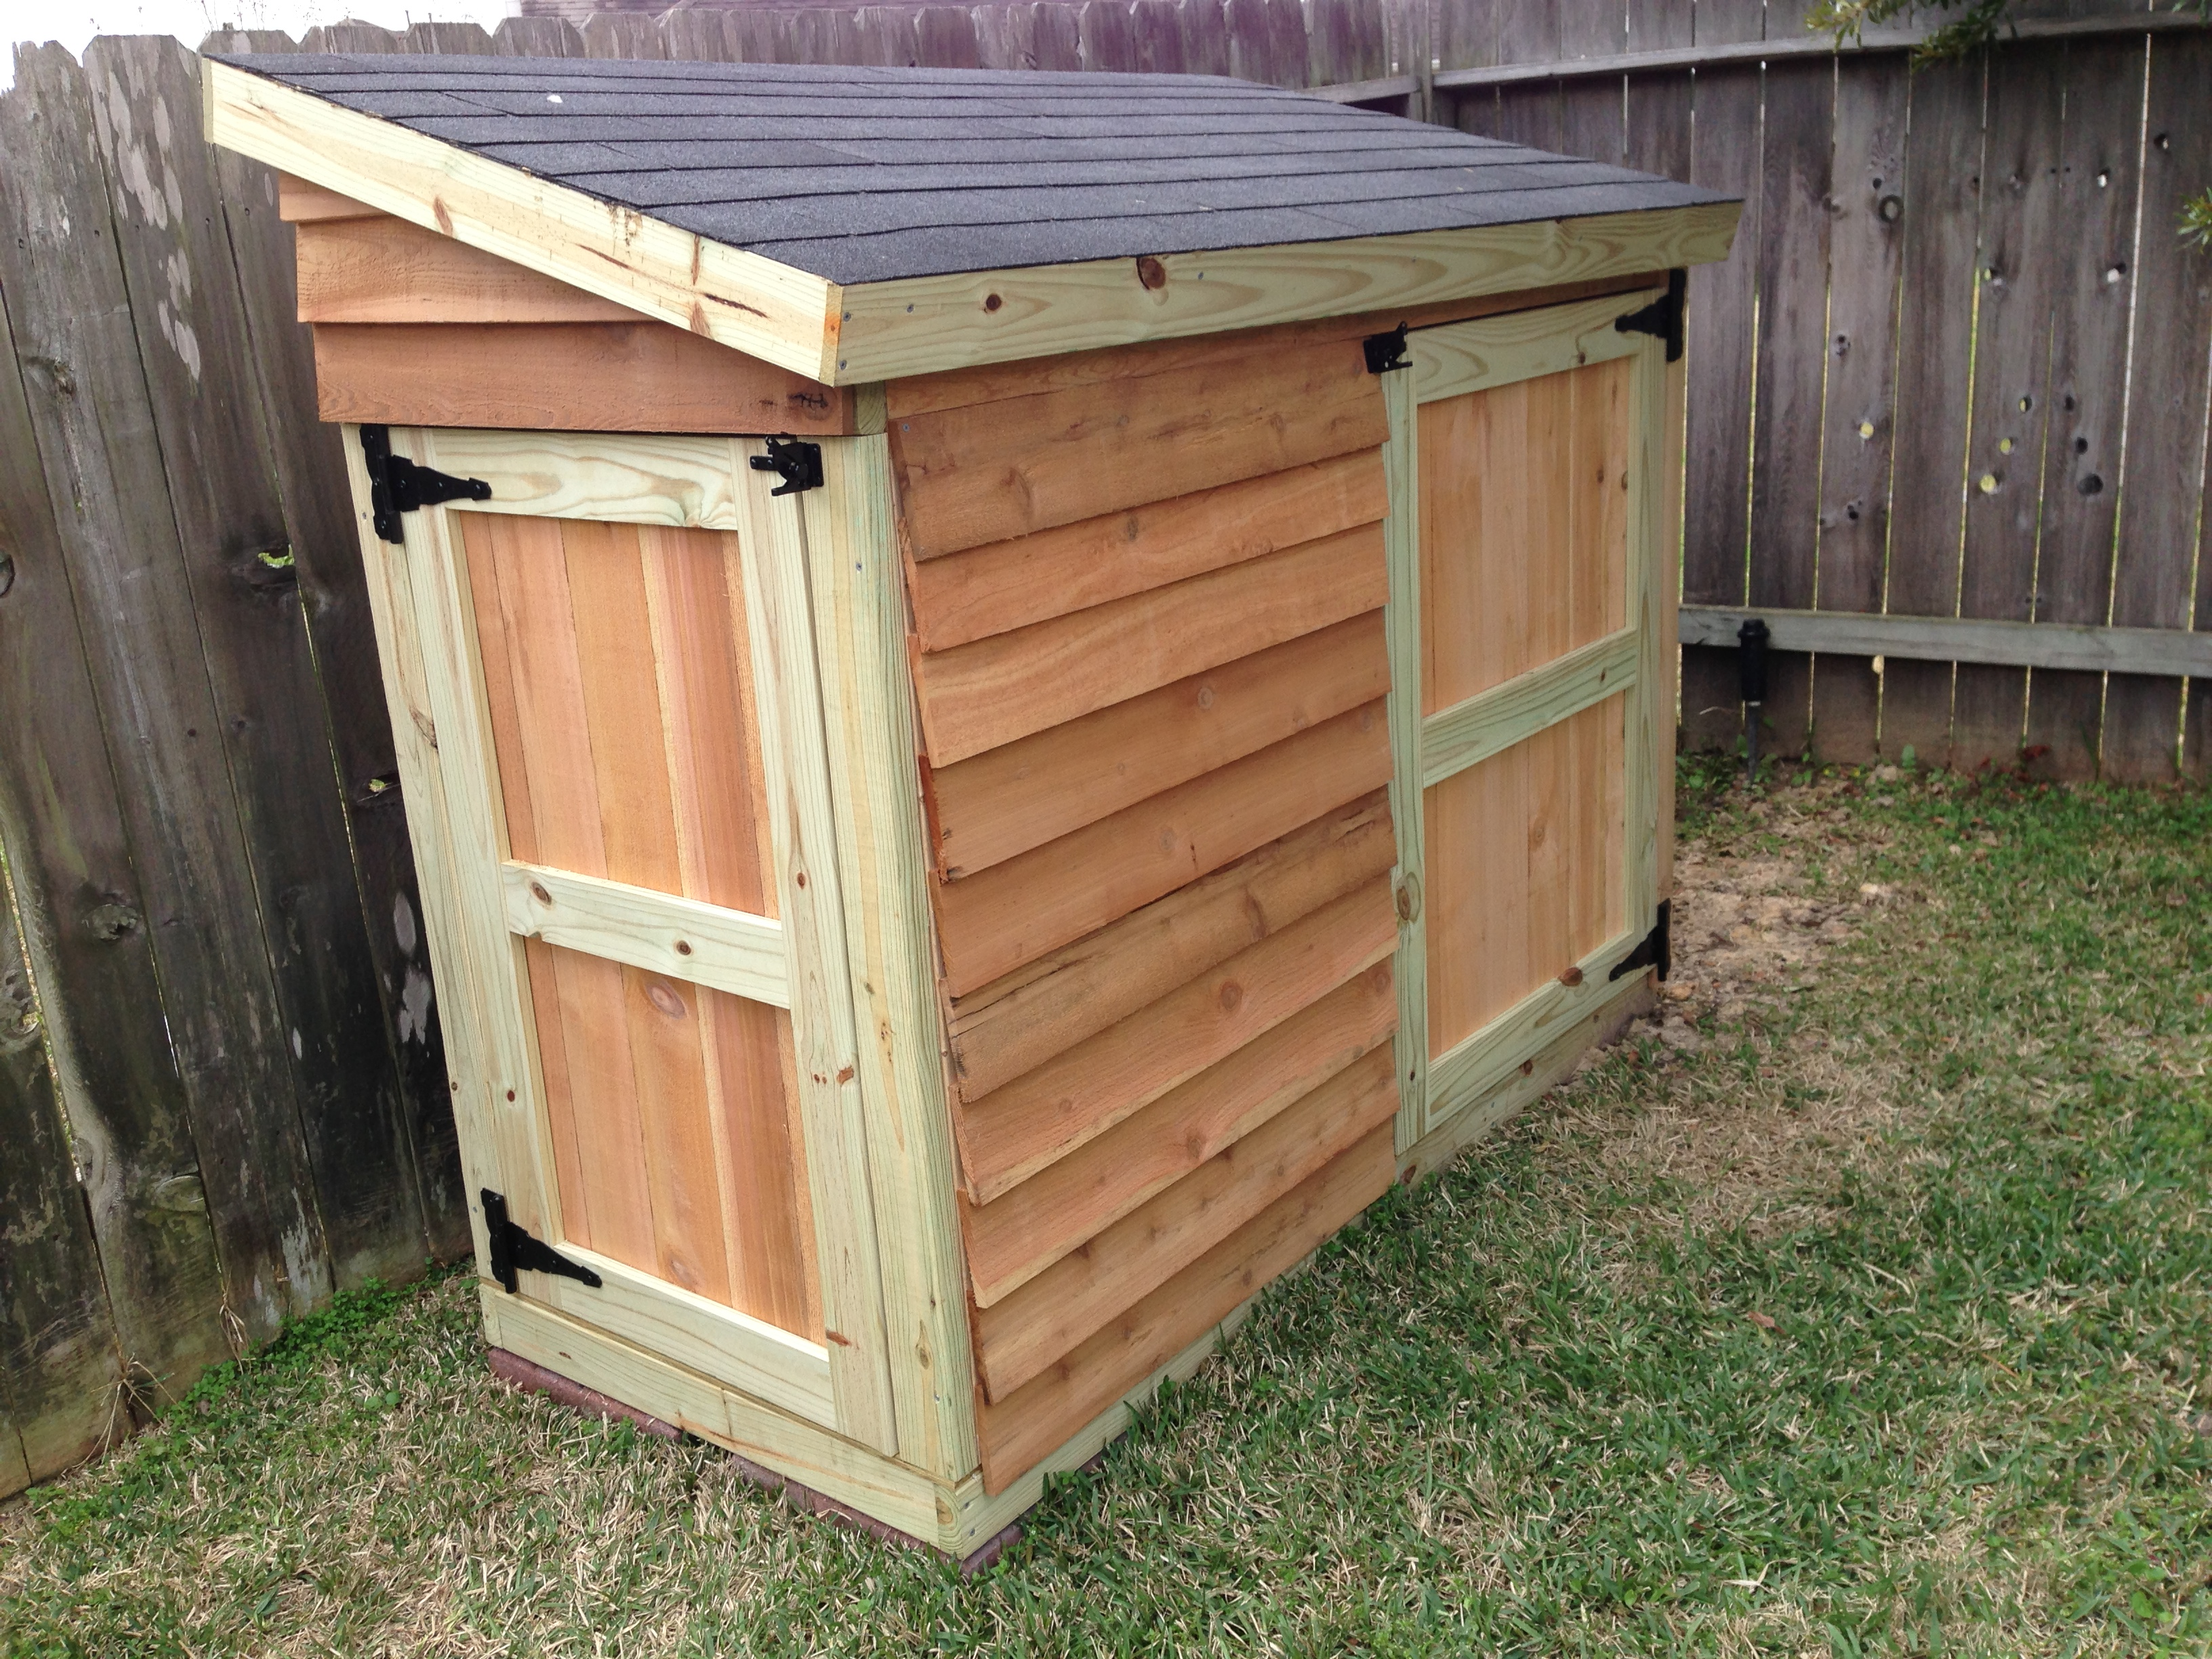 Small Storage Shed For Lawn Mower | Droughtrelief org